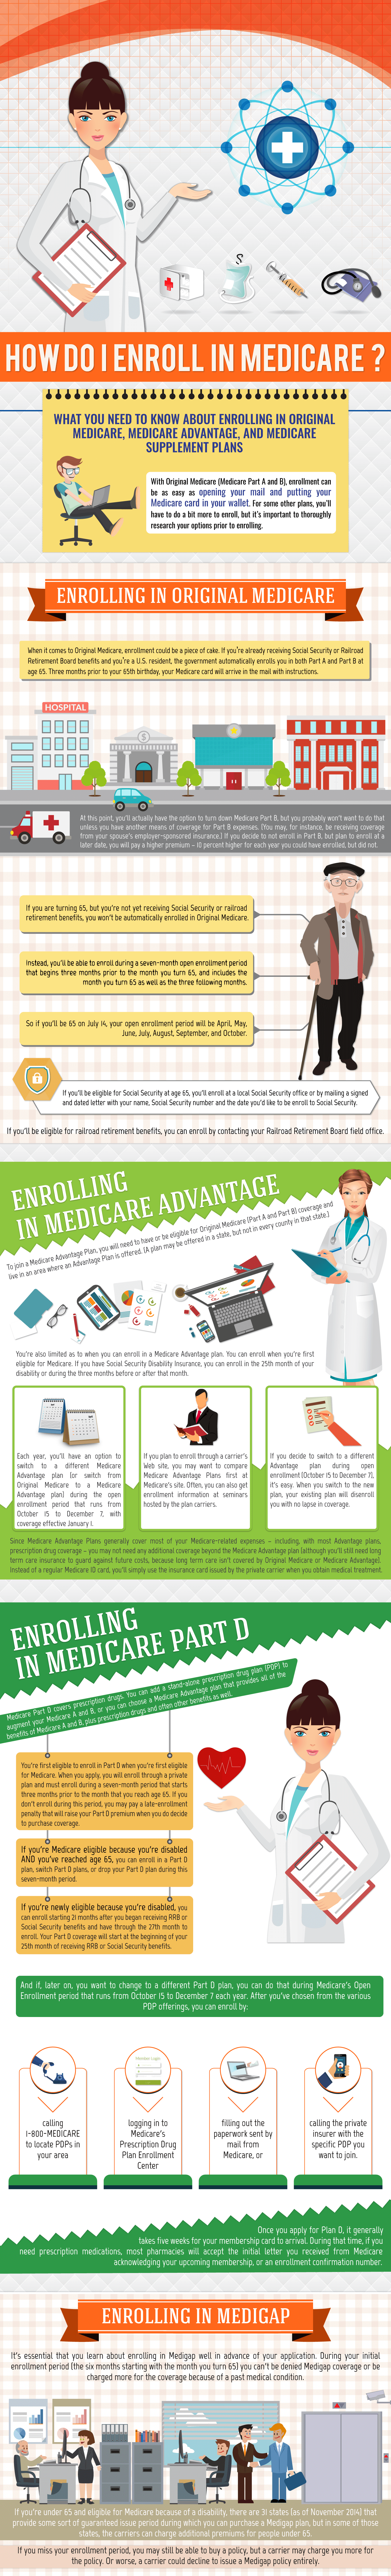 How do I enroll in Medicare